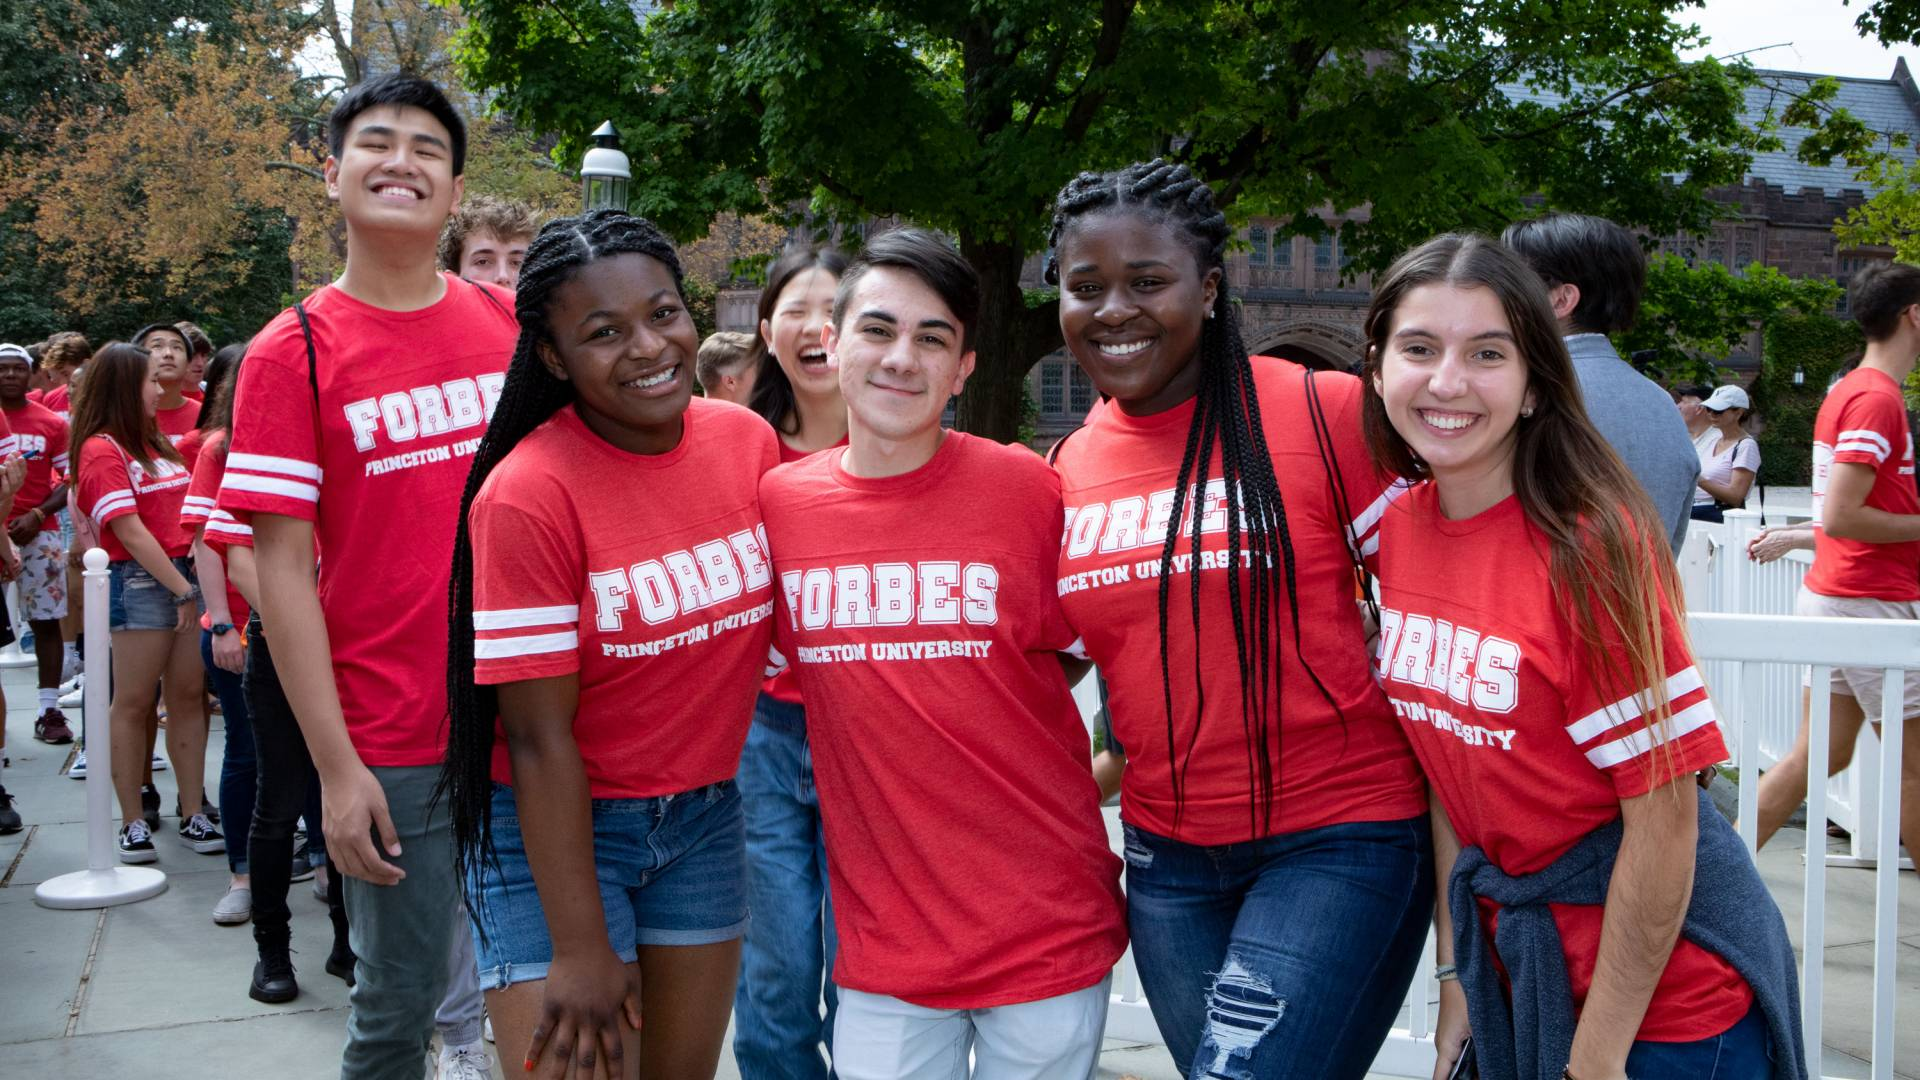 Students wearing Forbes t shirts pose for a photo